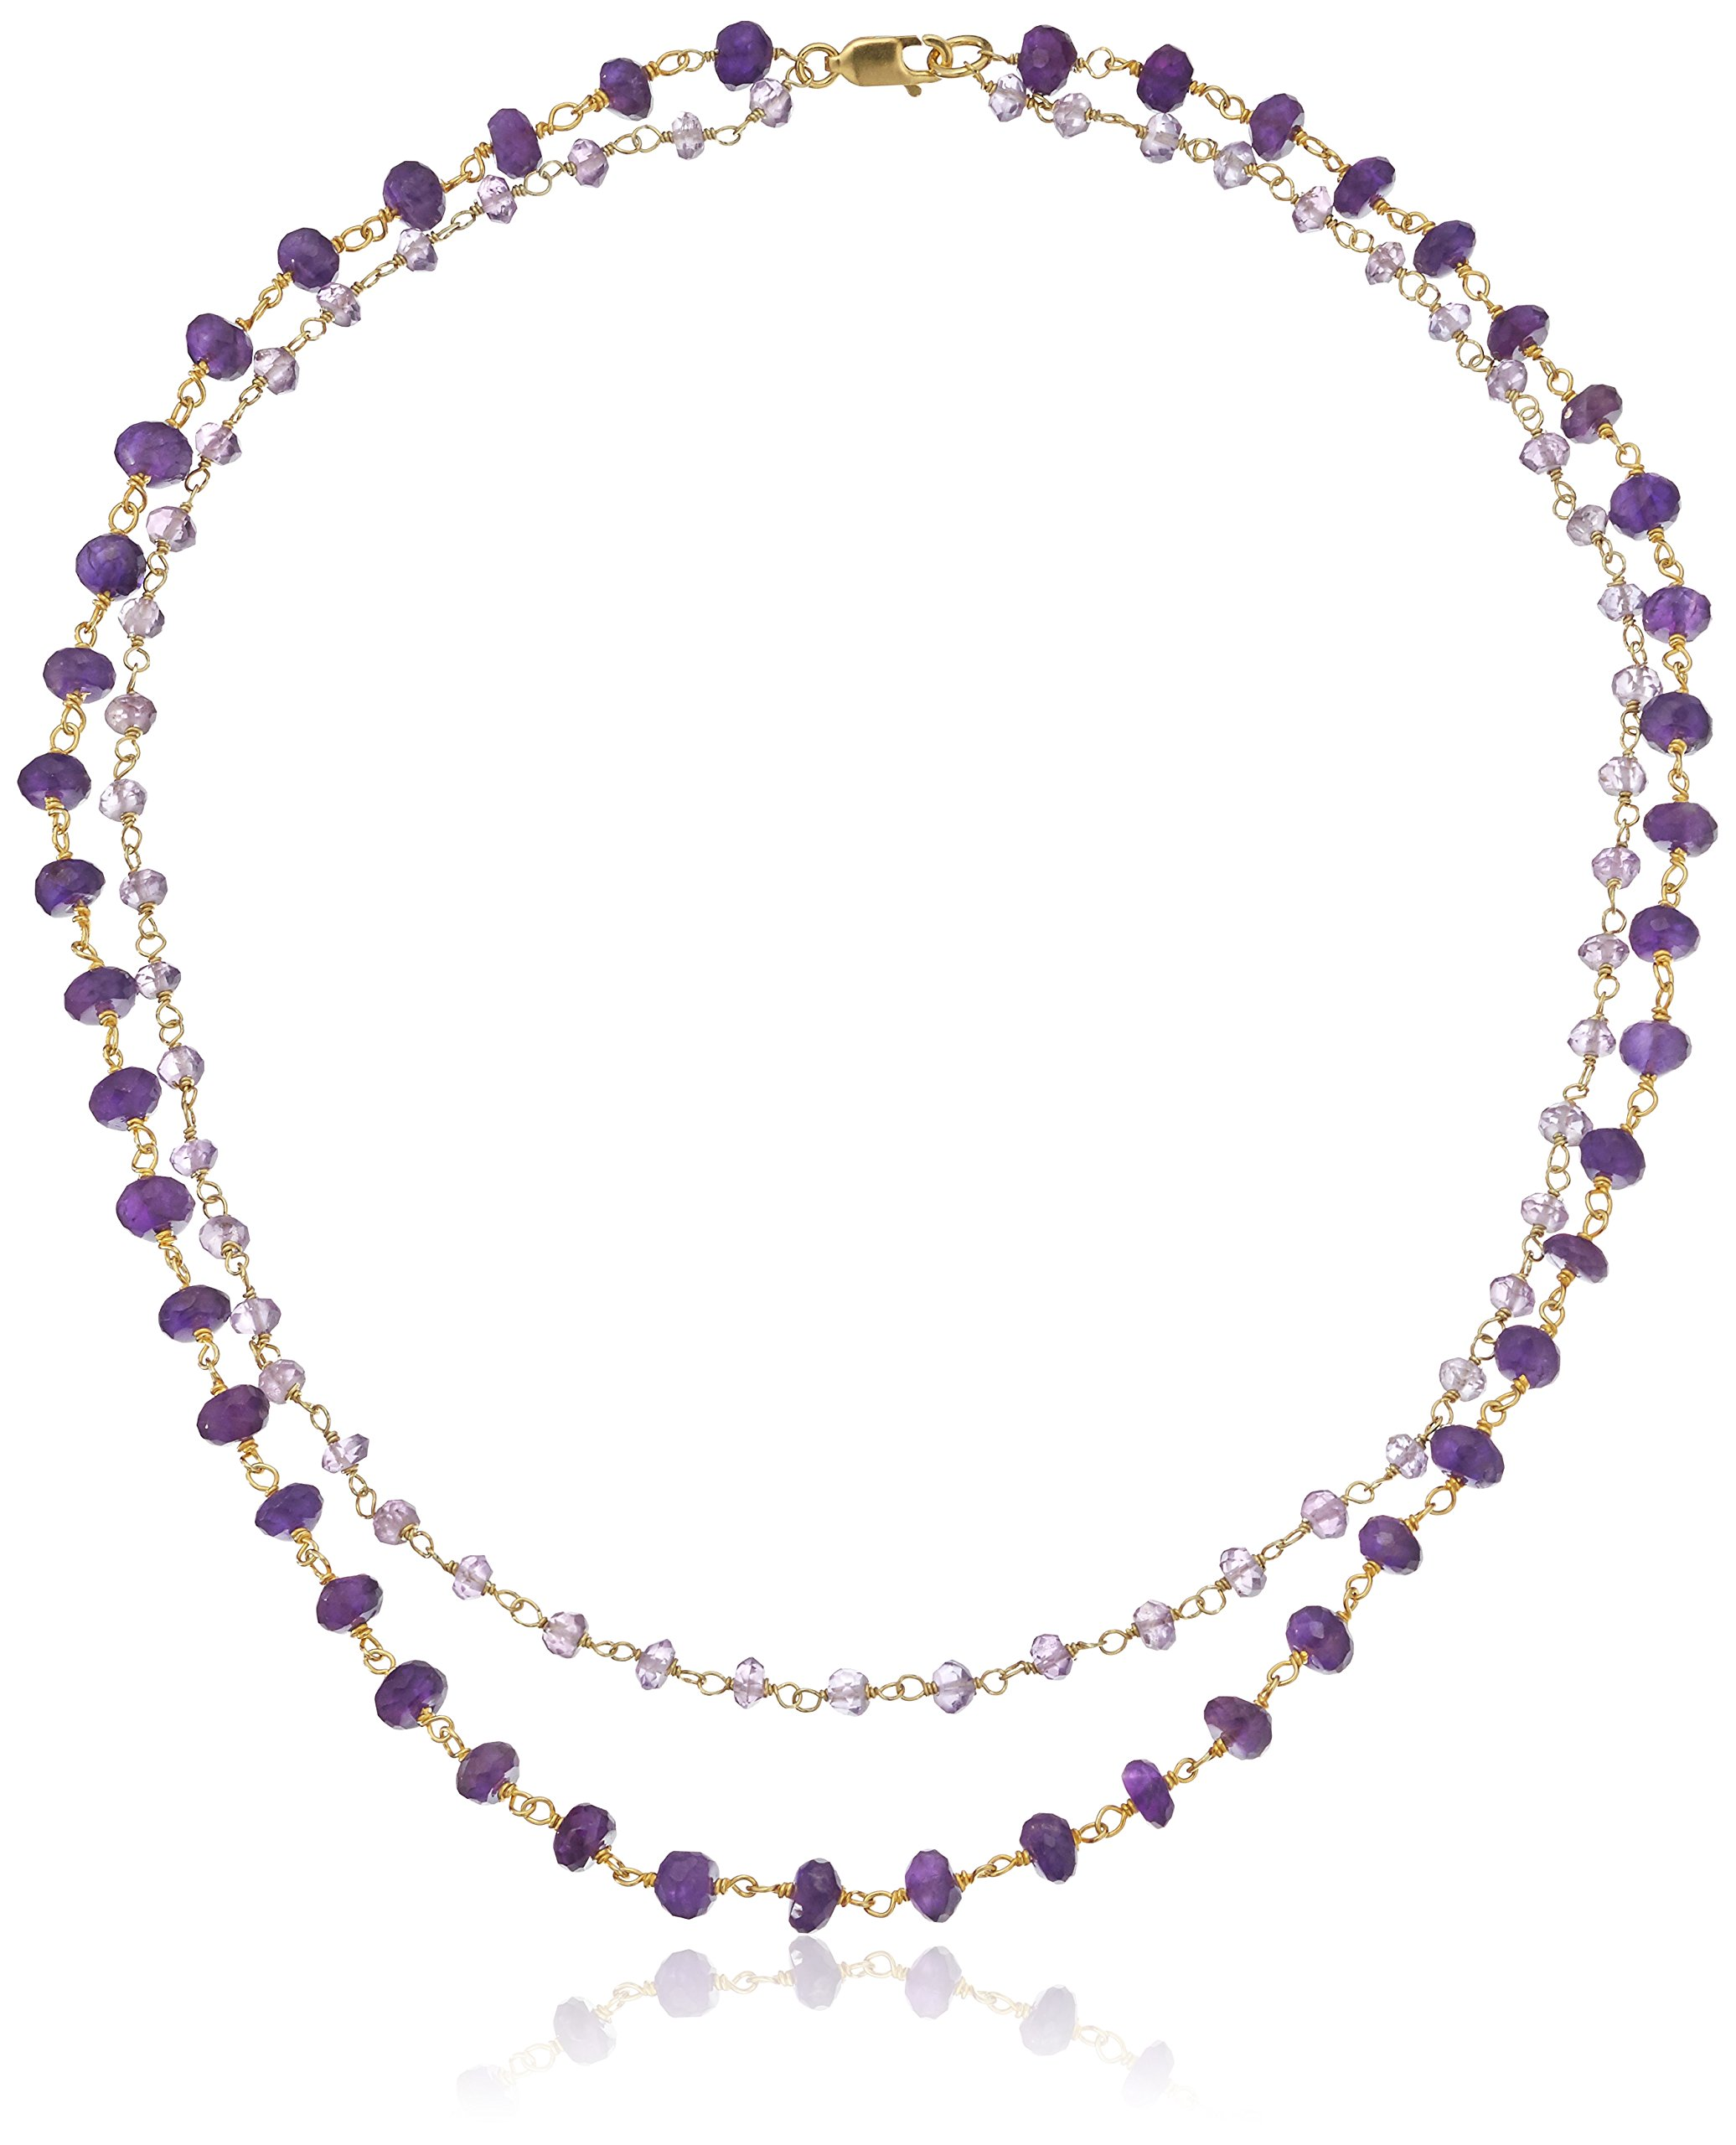 Handmade Two Row Gold Over Sterling Silver and Amethyst Beaded Link To Link Chain Choker Necklace